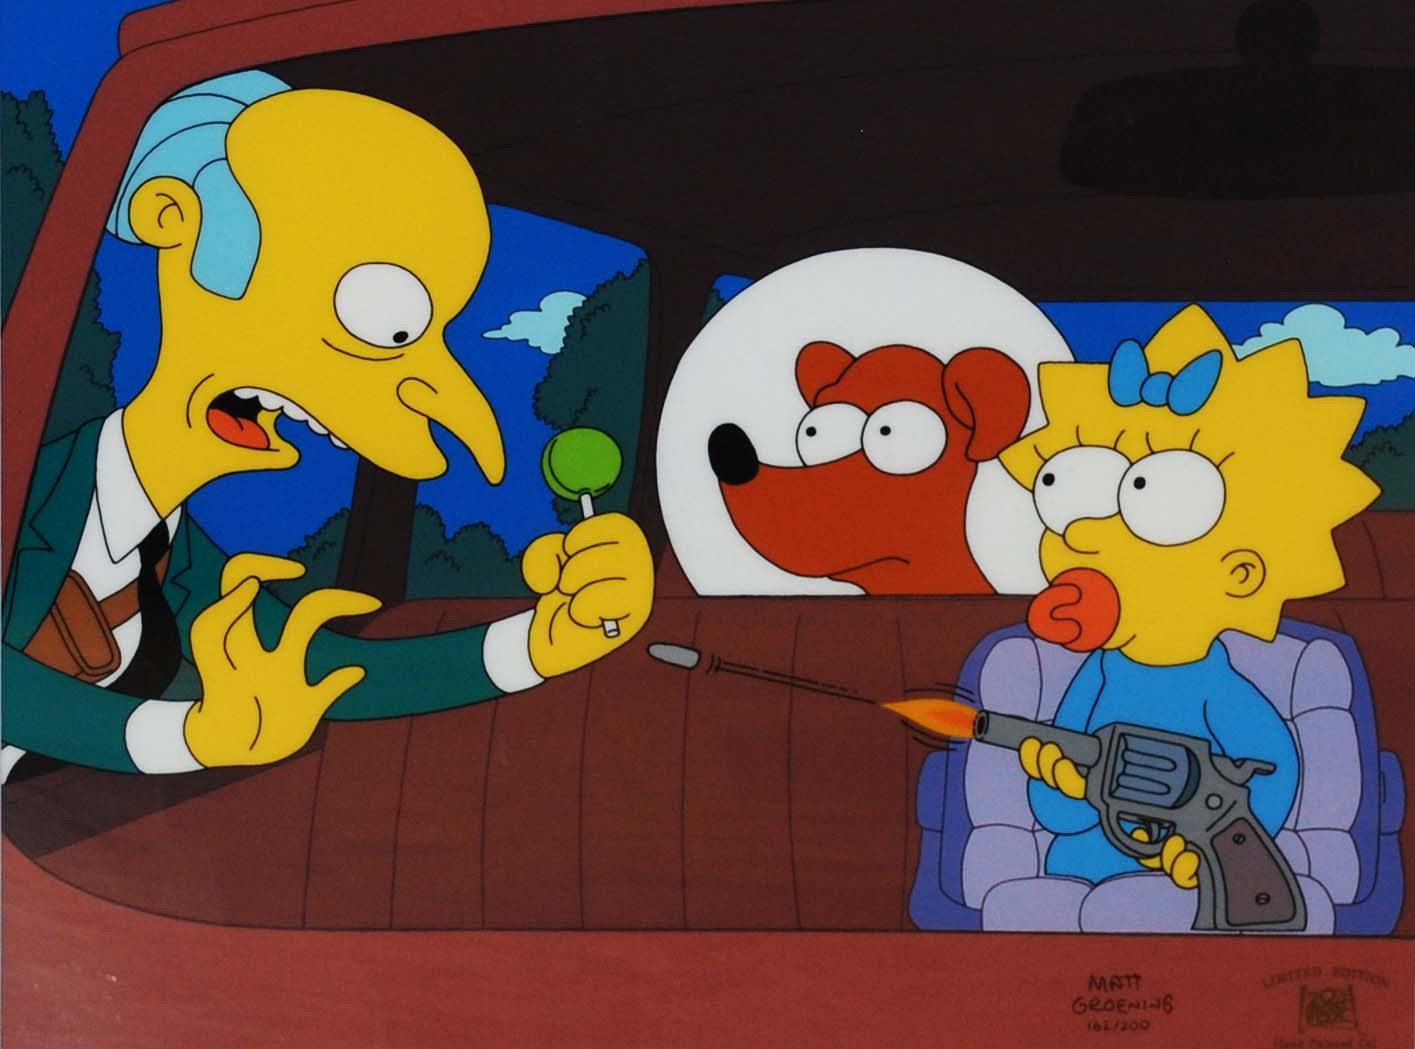 simpsons-mr-burns2-icon.jpg